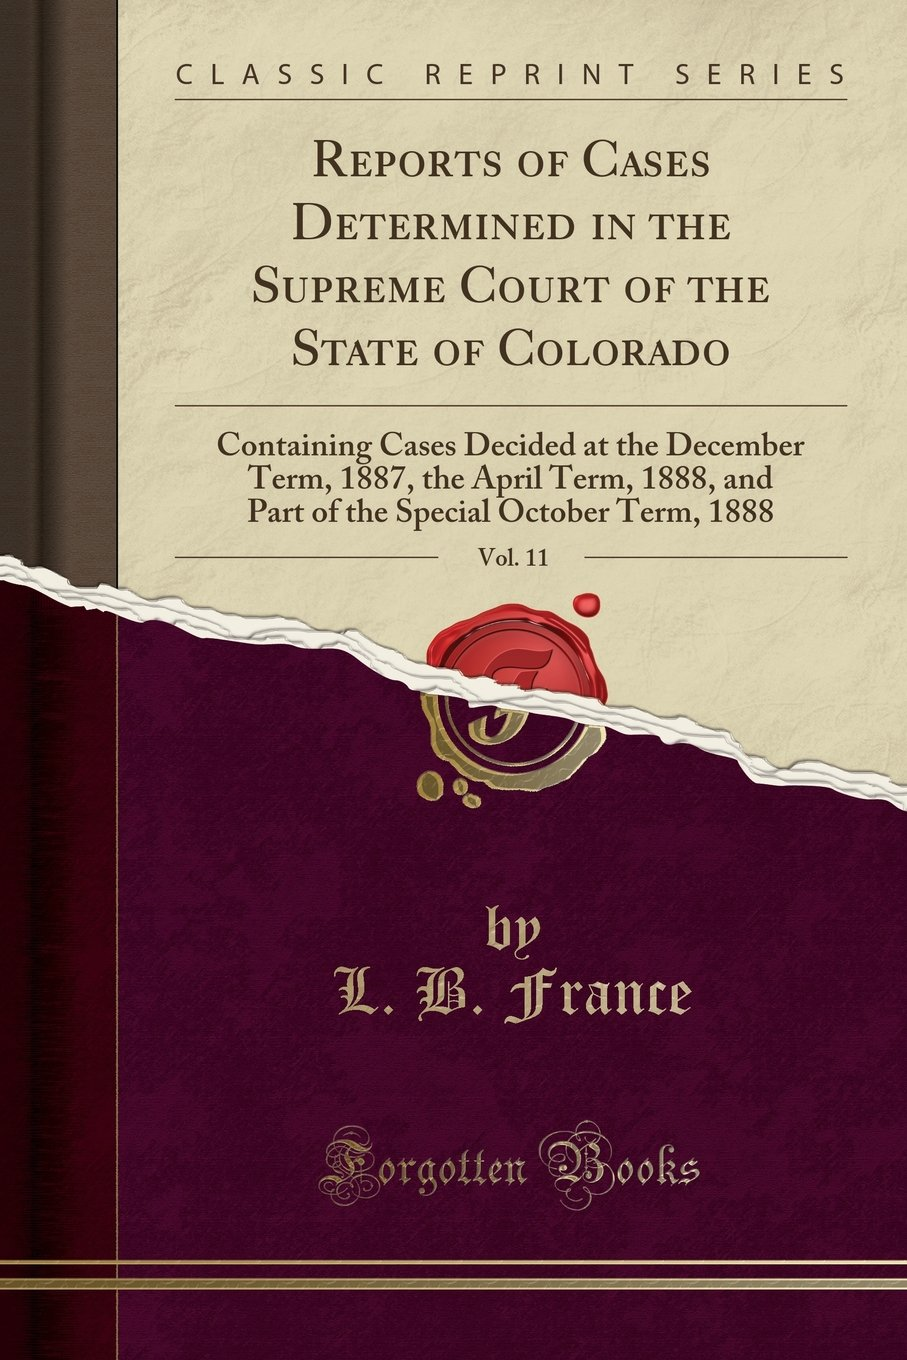 Download Reports of Cases Determined in the Supreme Court of the State of Colorado, Vol. 11: Containing Cases Decided at the December Term, 1887, the April ... Special October Term, 1888 (Classic Reprint) pdf epub